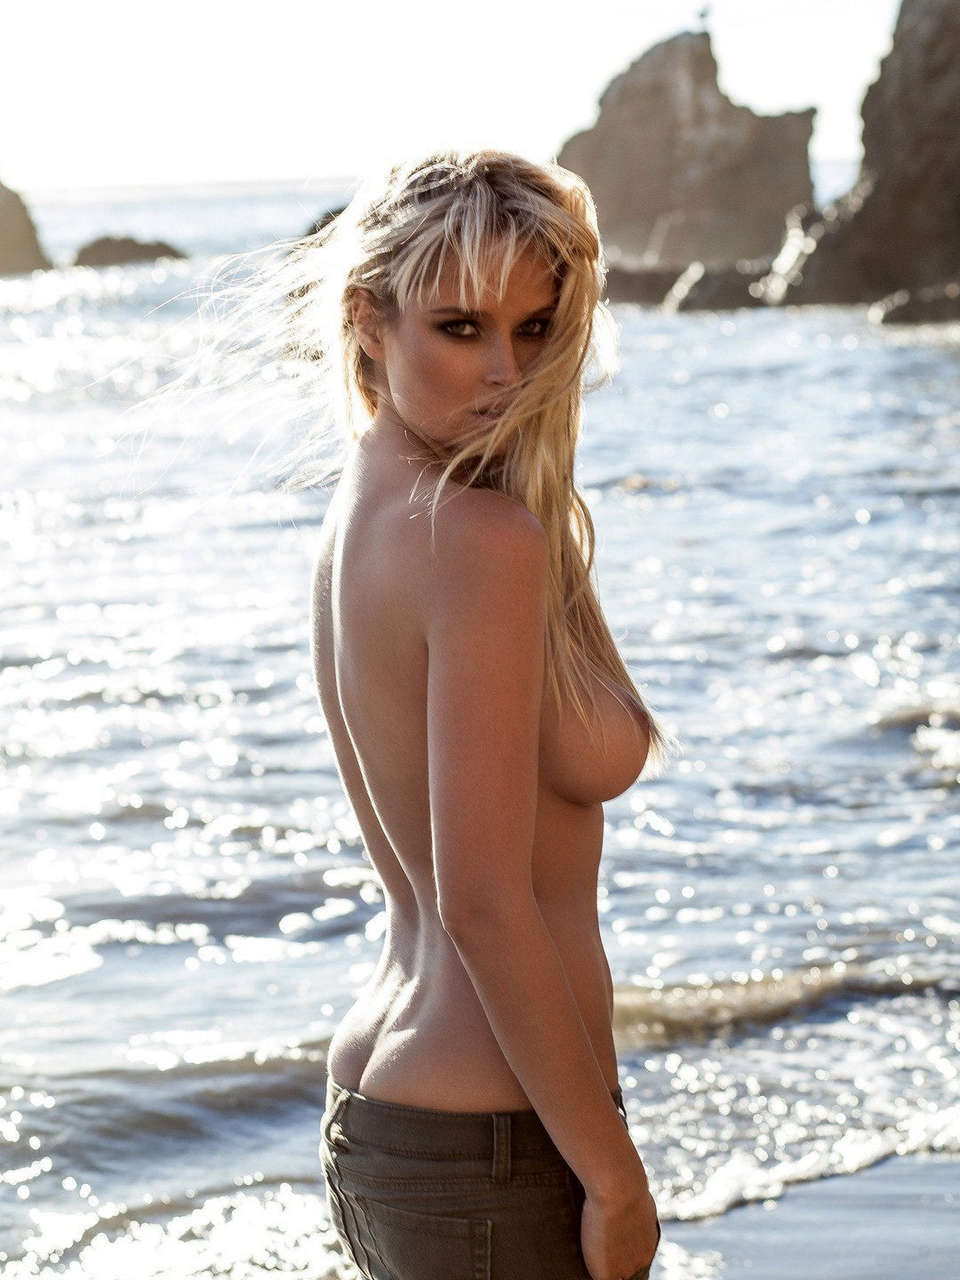 Genevieve Morton Topless In The July 2014 Issue Of Gq South Africa NSFW